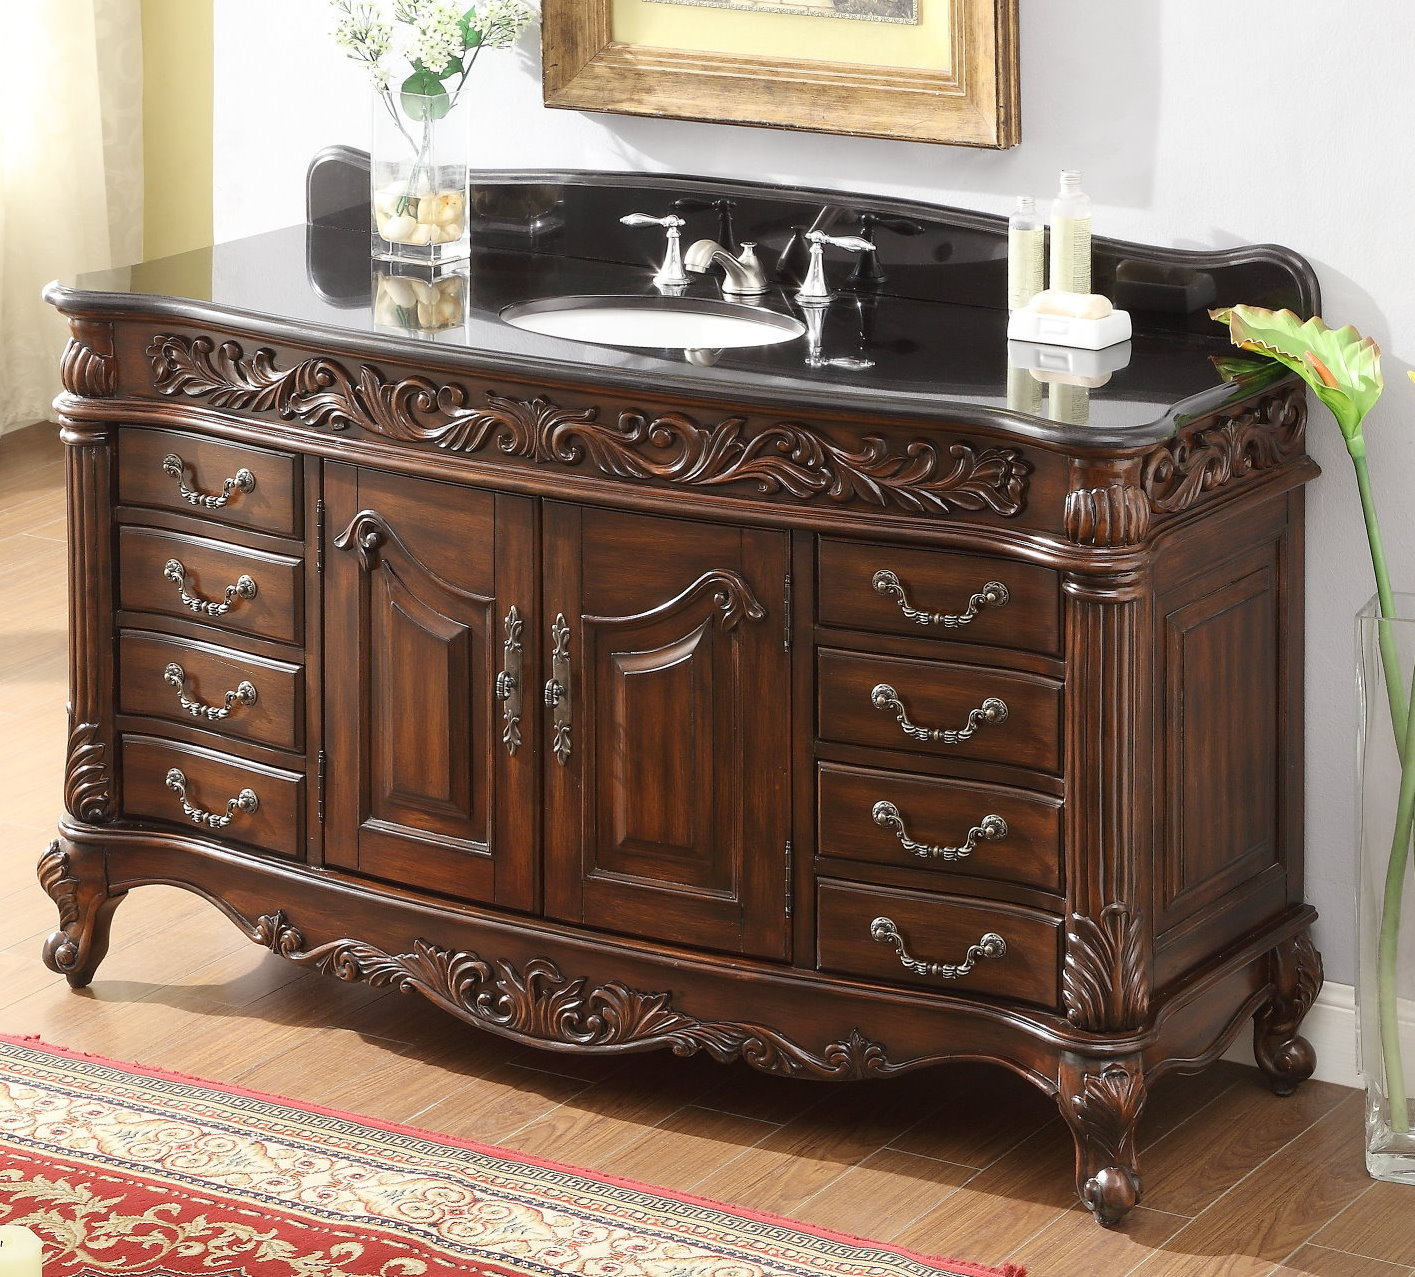 Awesome 60 Inch Double Sink Bathroom Vanity A Realistic Review  Reborn Homes